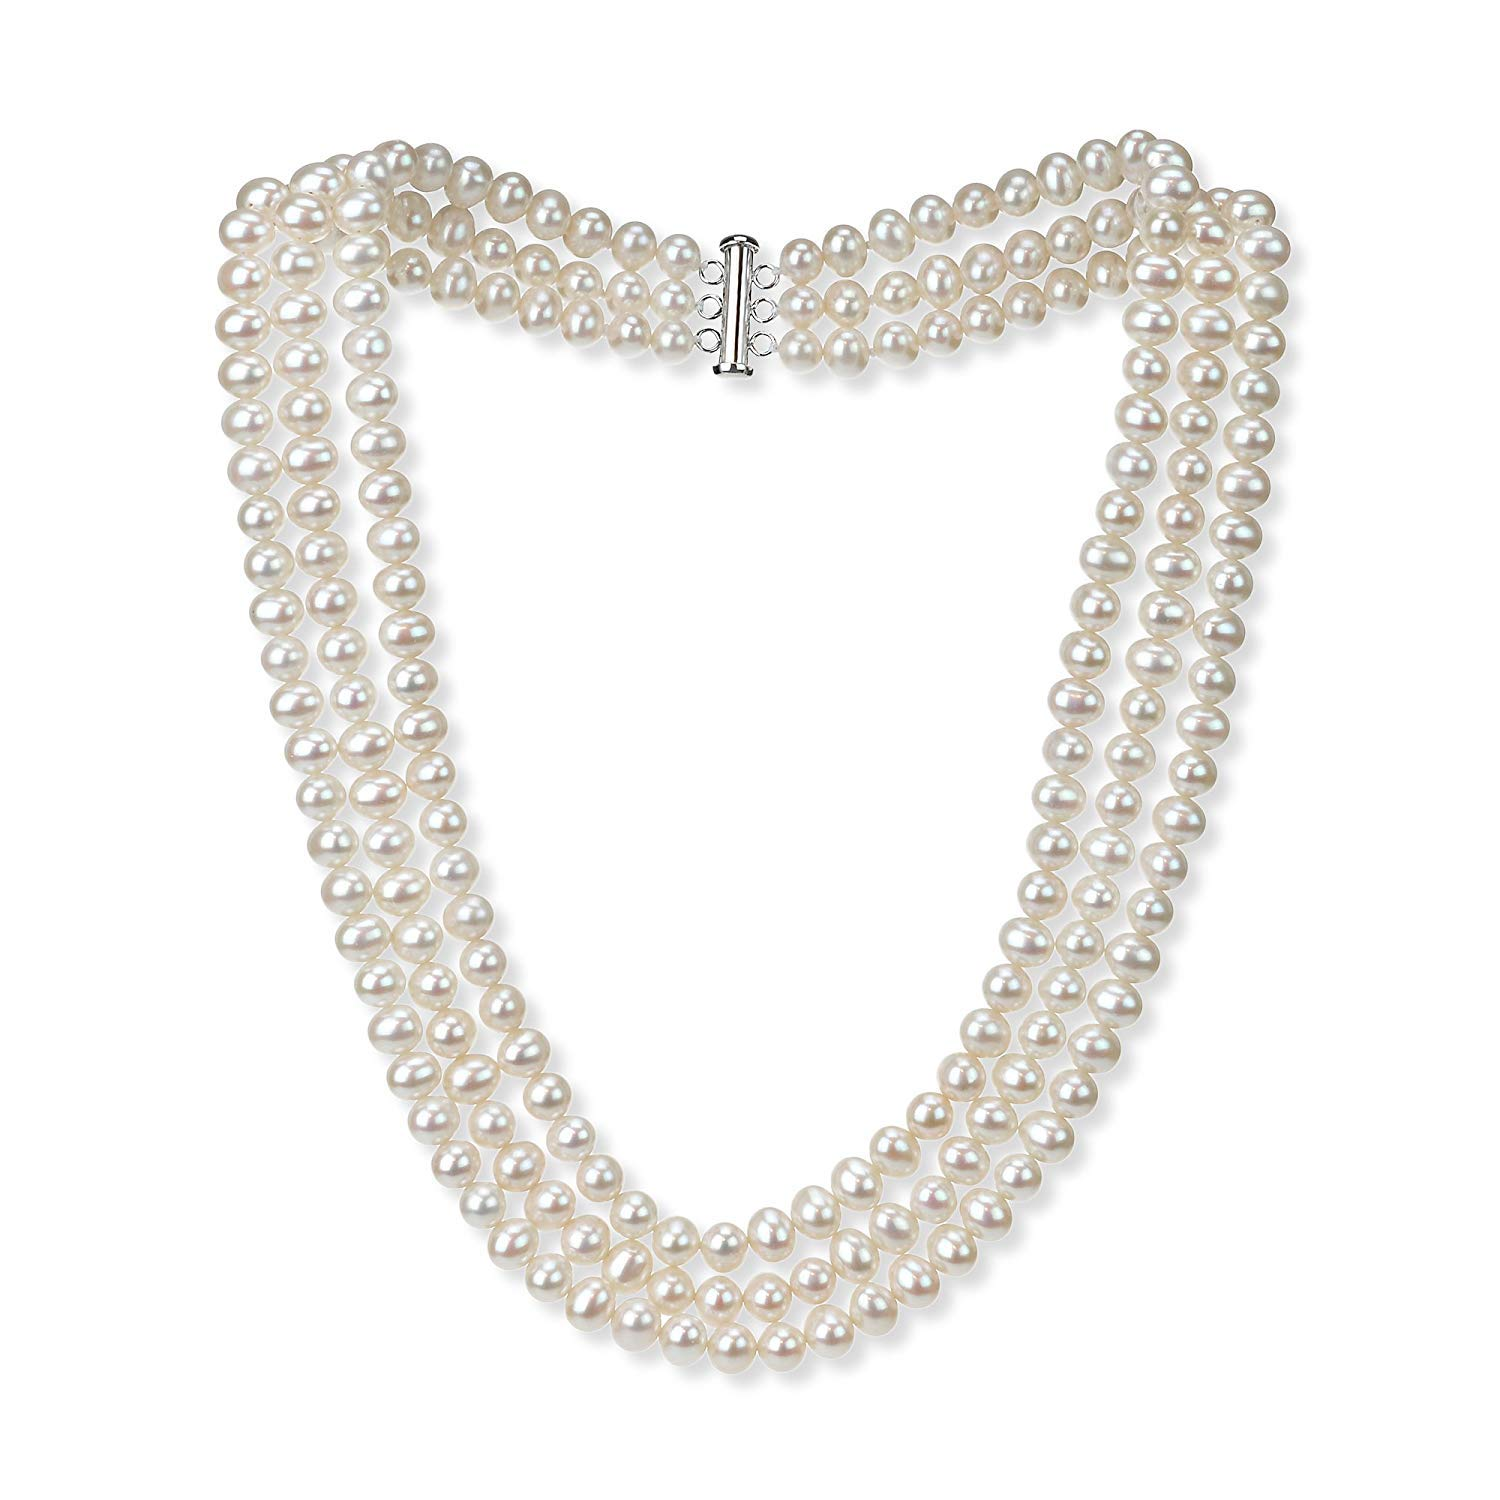 Sterling Silver 6.5-7mm 3 Strand White Freshwater Cultured High Luster Pearl Necklace Jewelry for Women 18'' by La Regis Jewelry